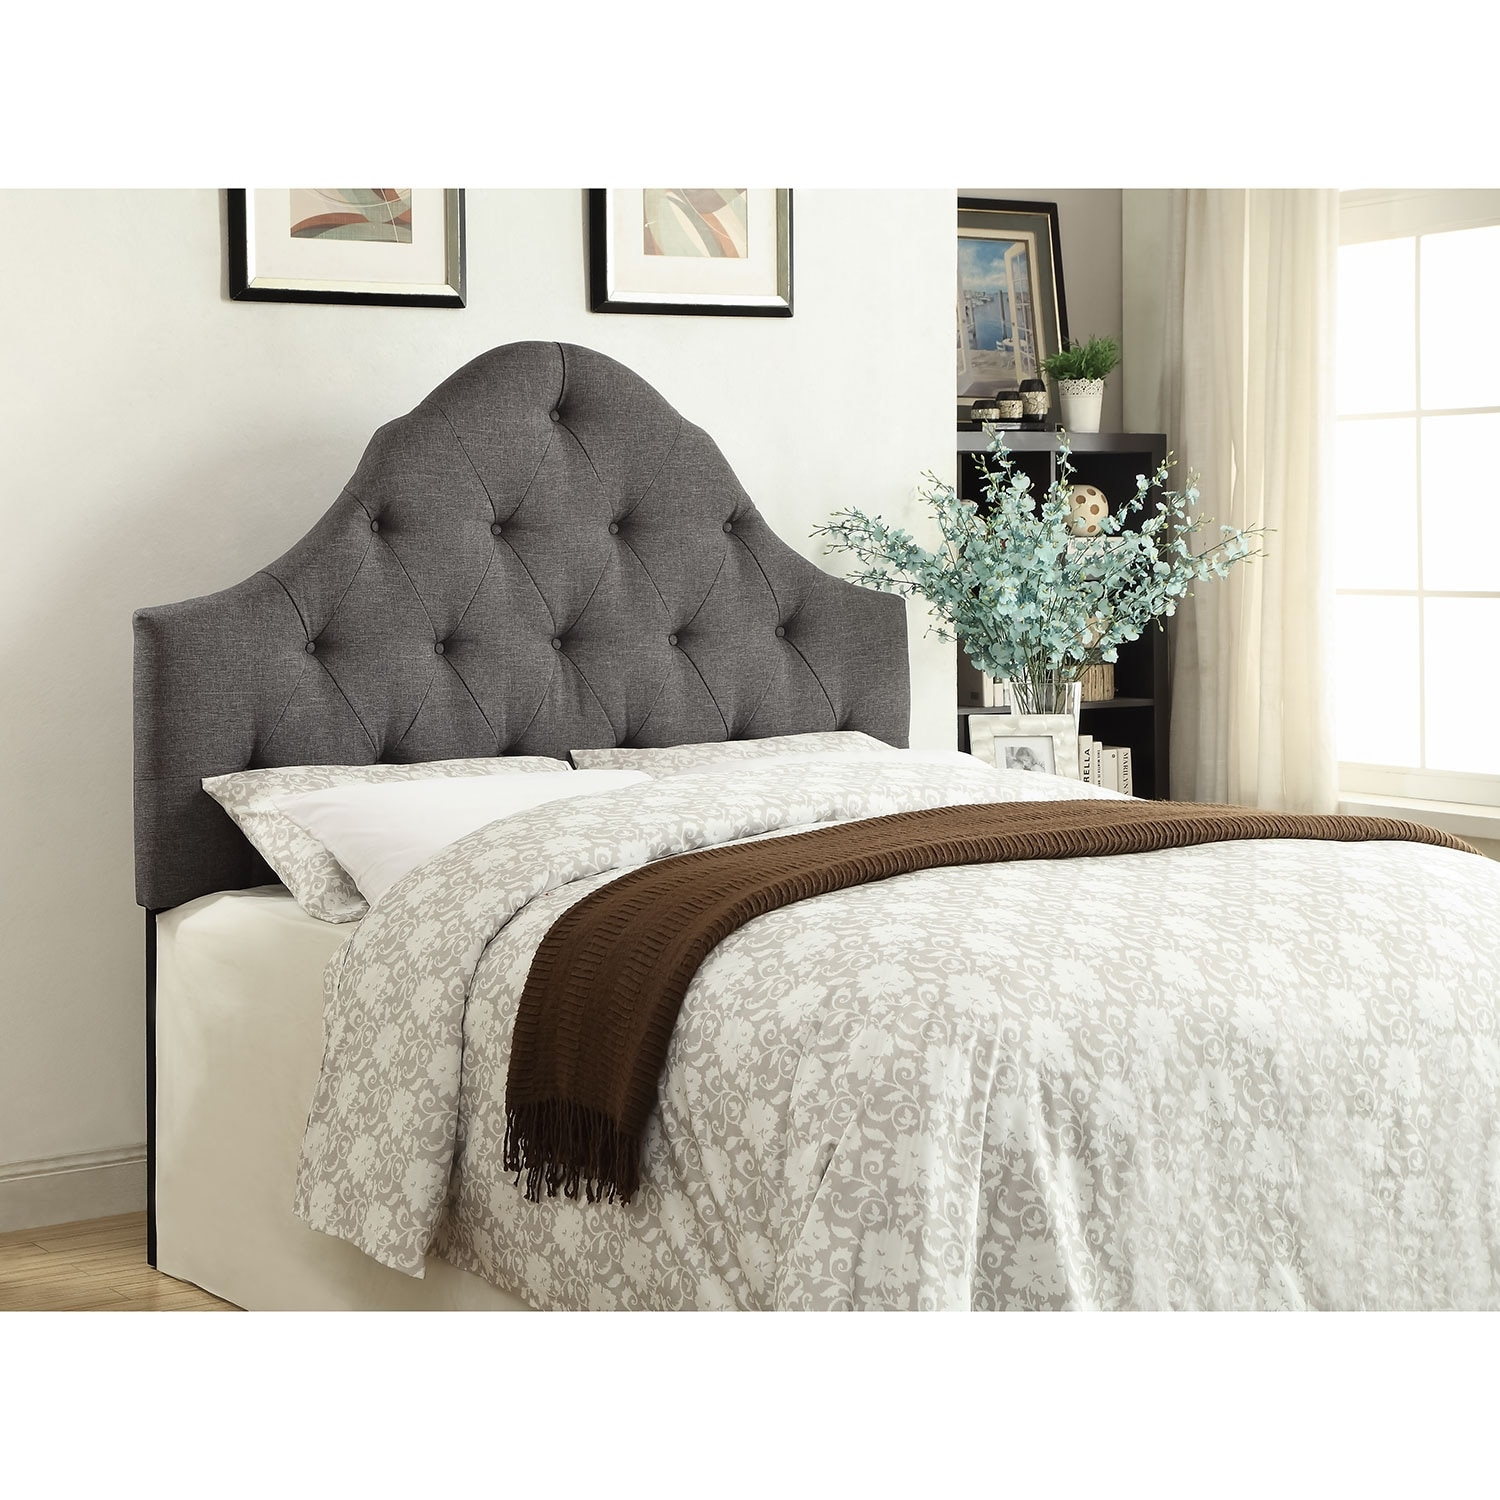 Brittany Full/Queen Headboard - Gray